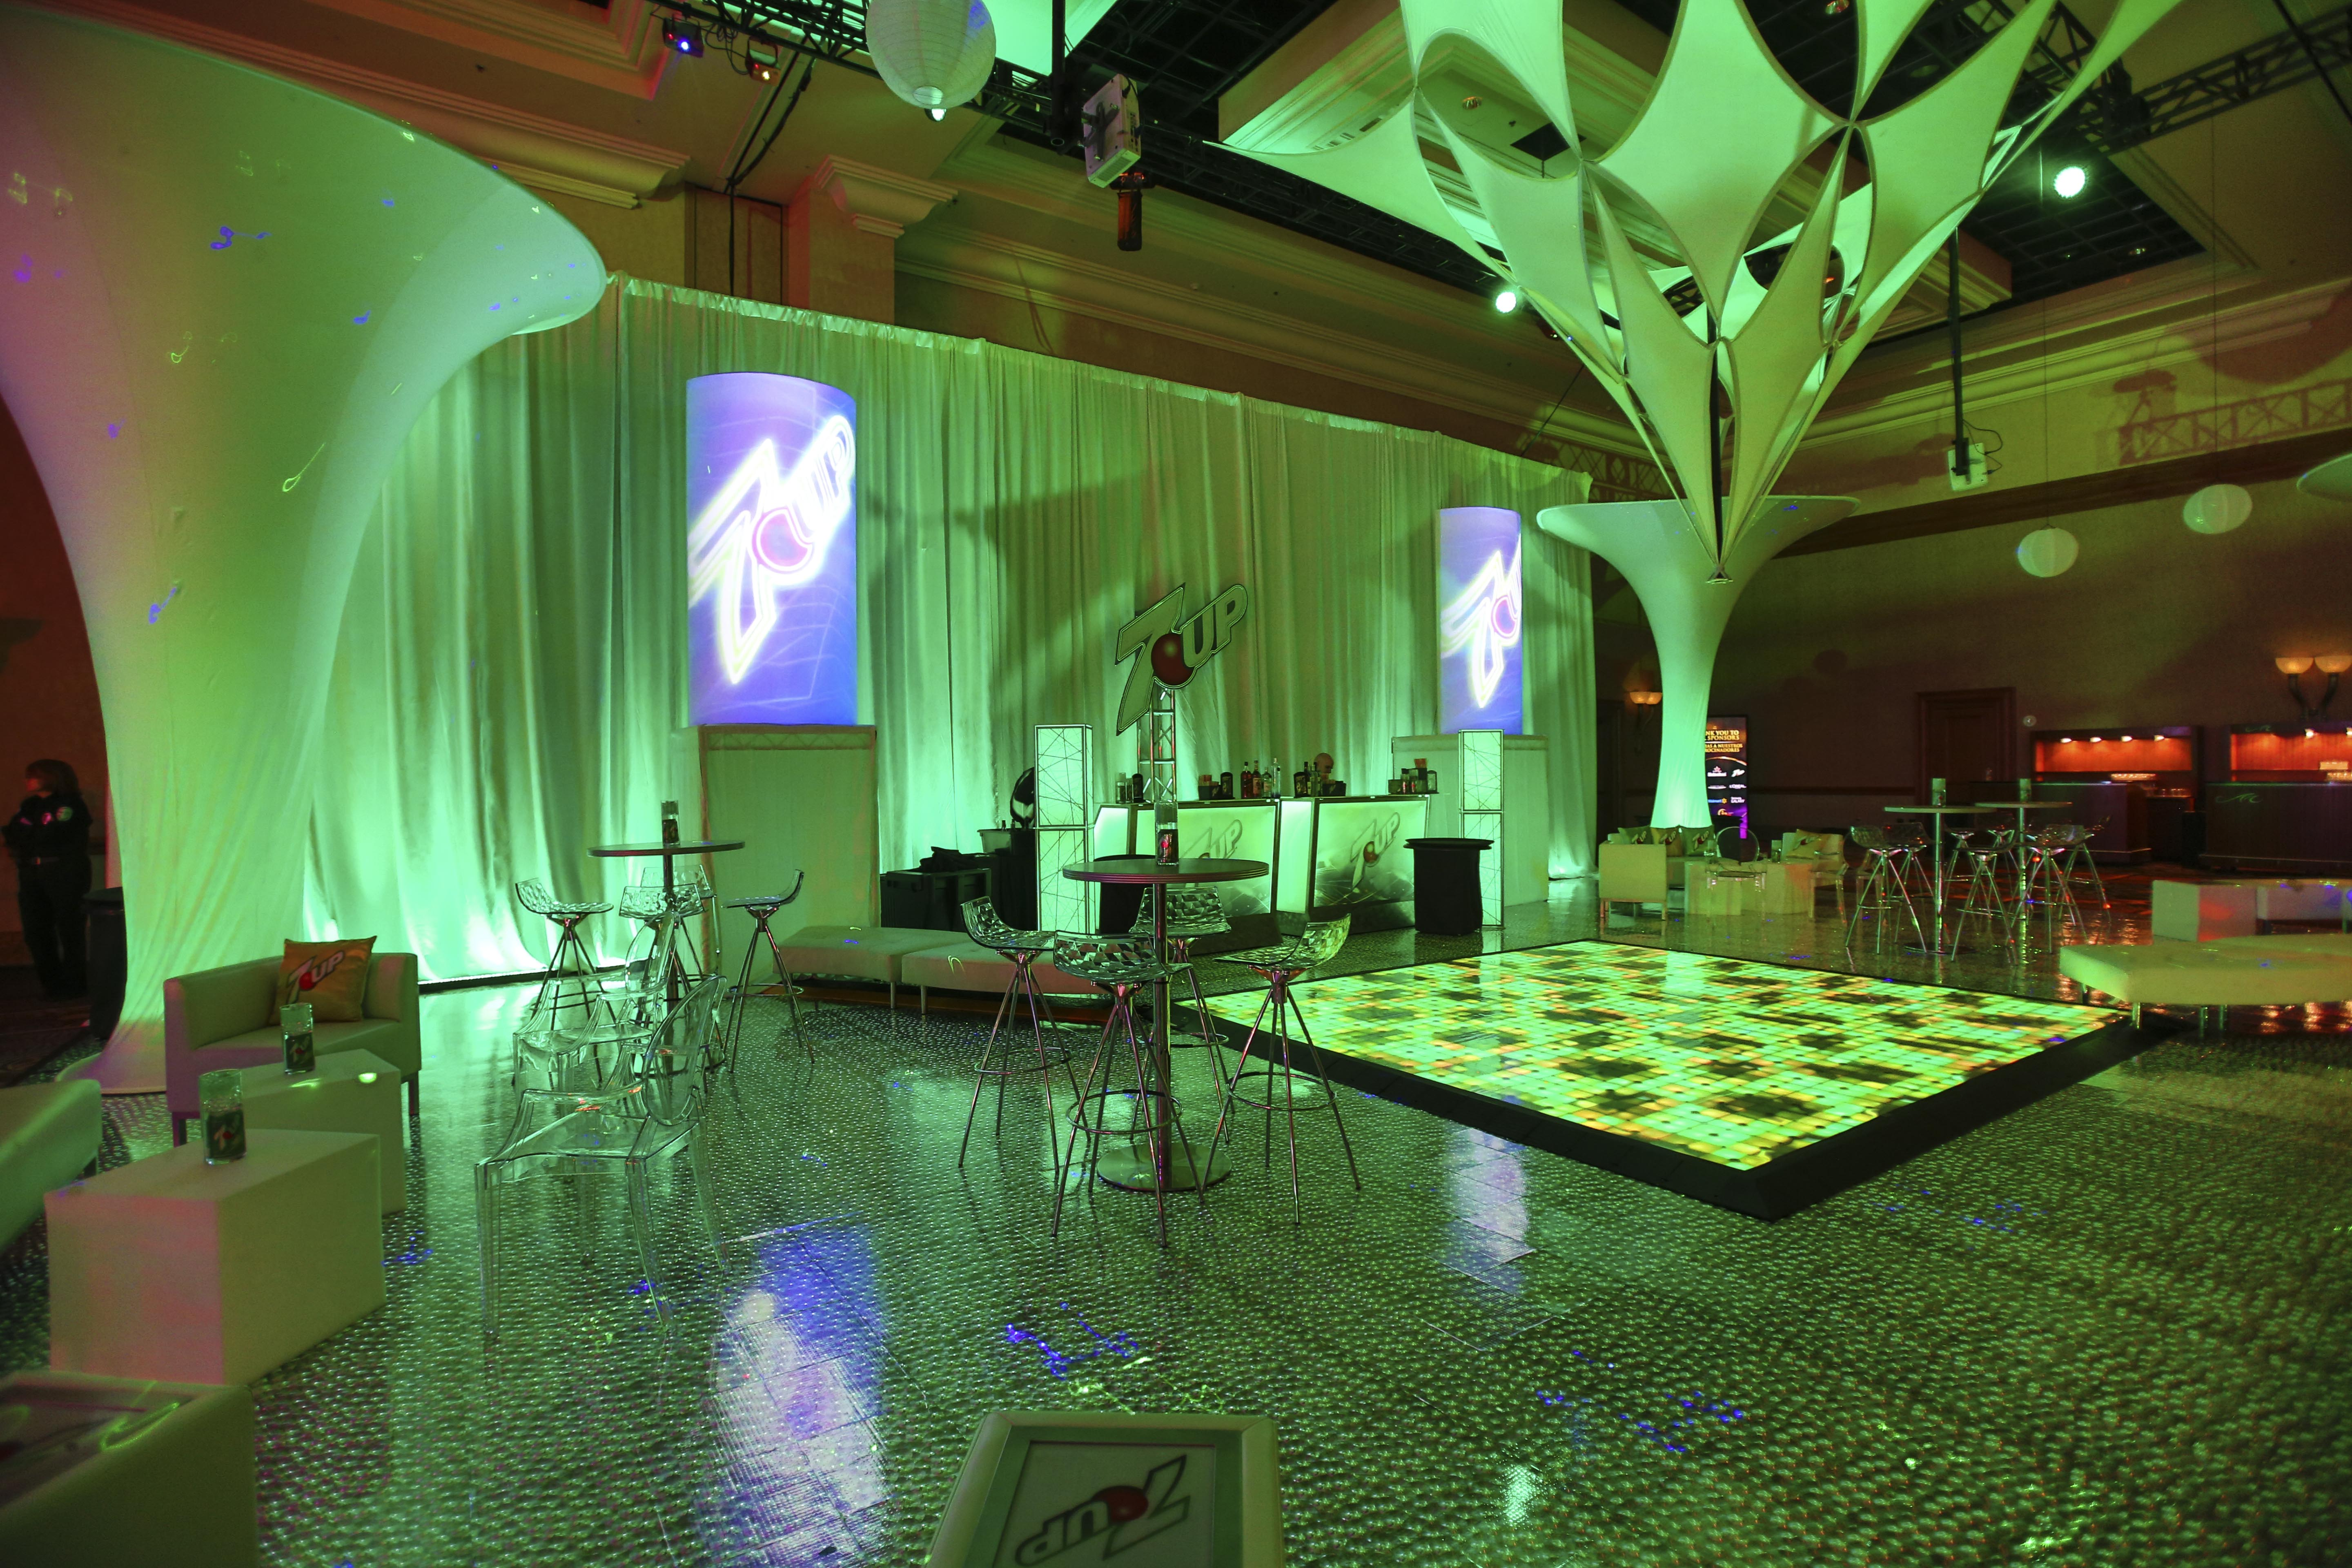 Dance Floor Rental to 7up photo